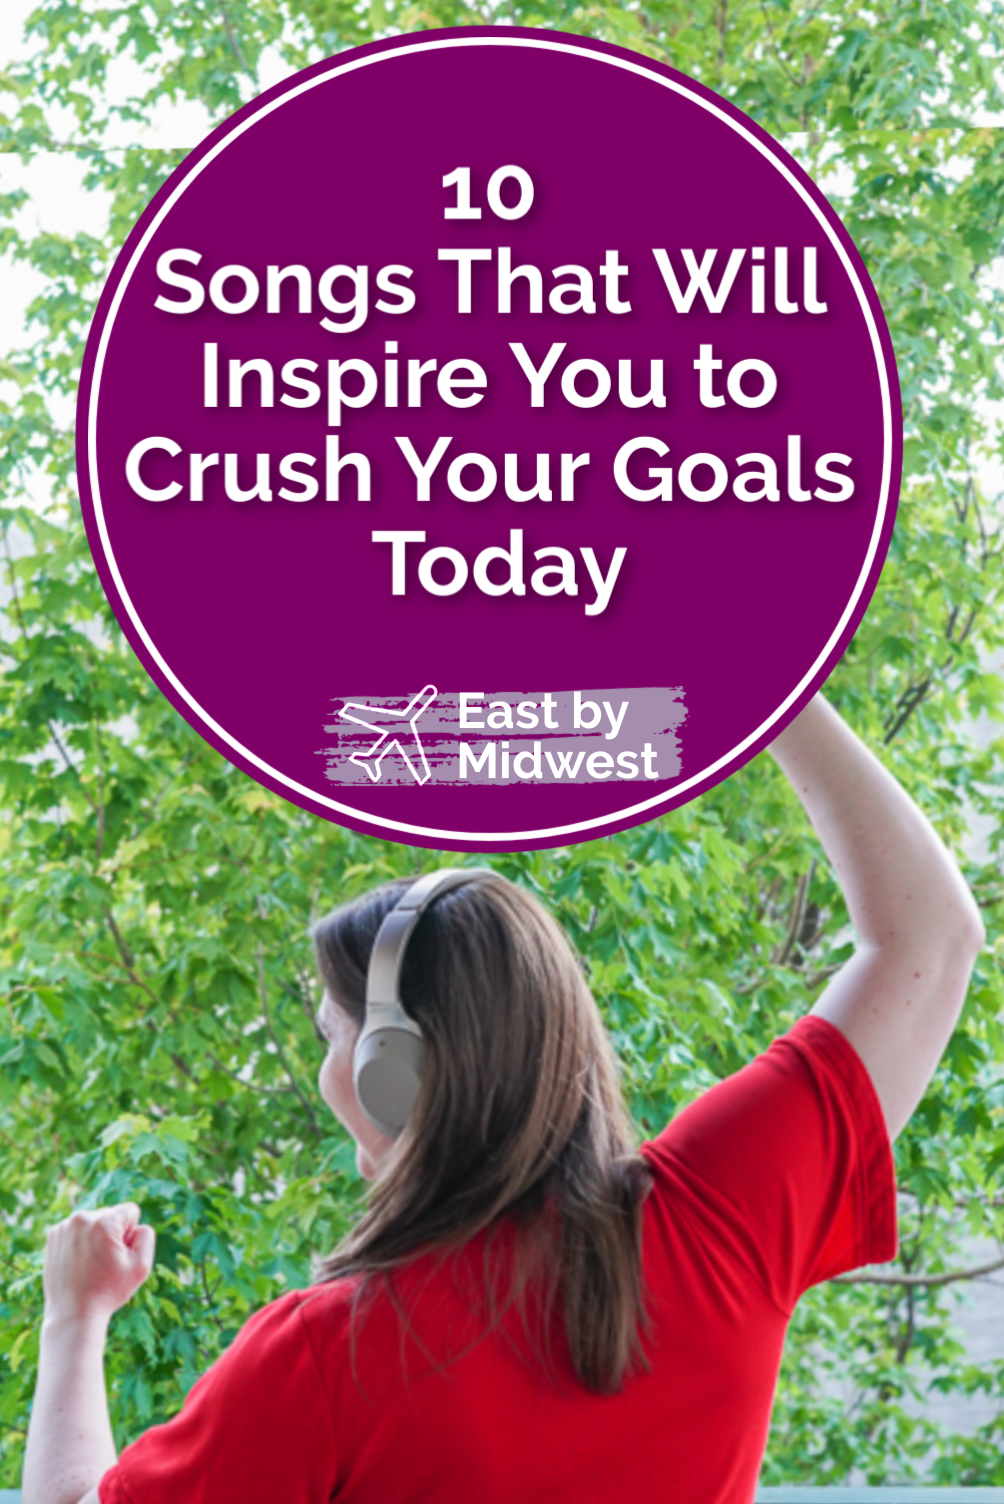 10 Songs That Will Inspire You to Crush Your Goals Today